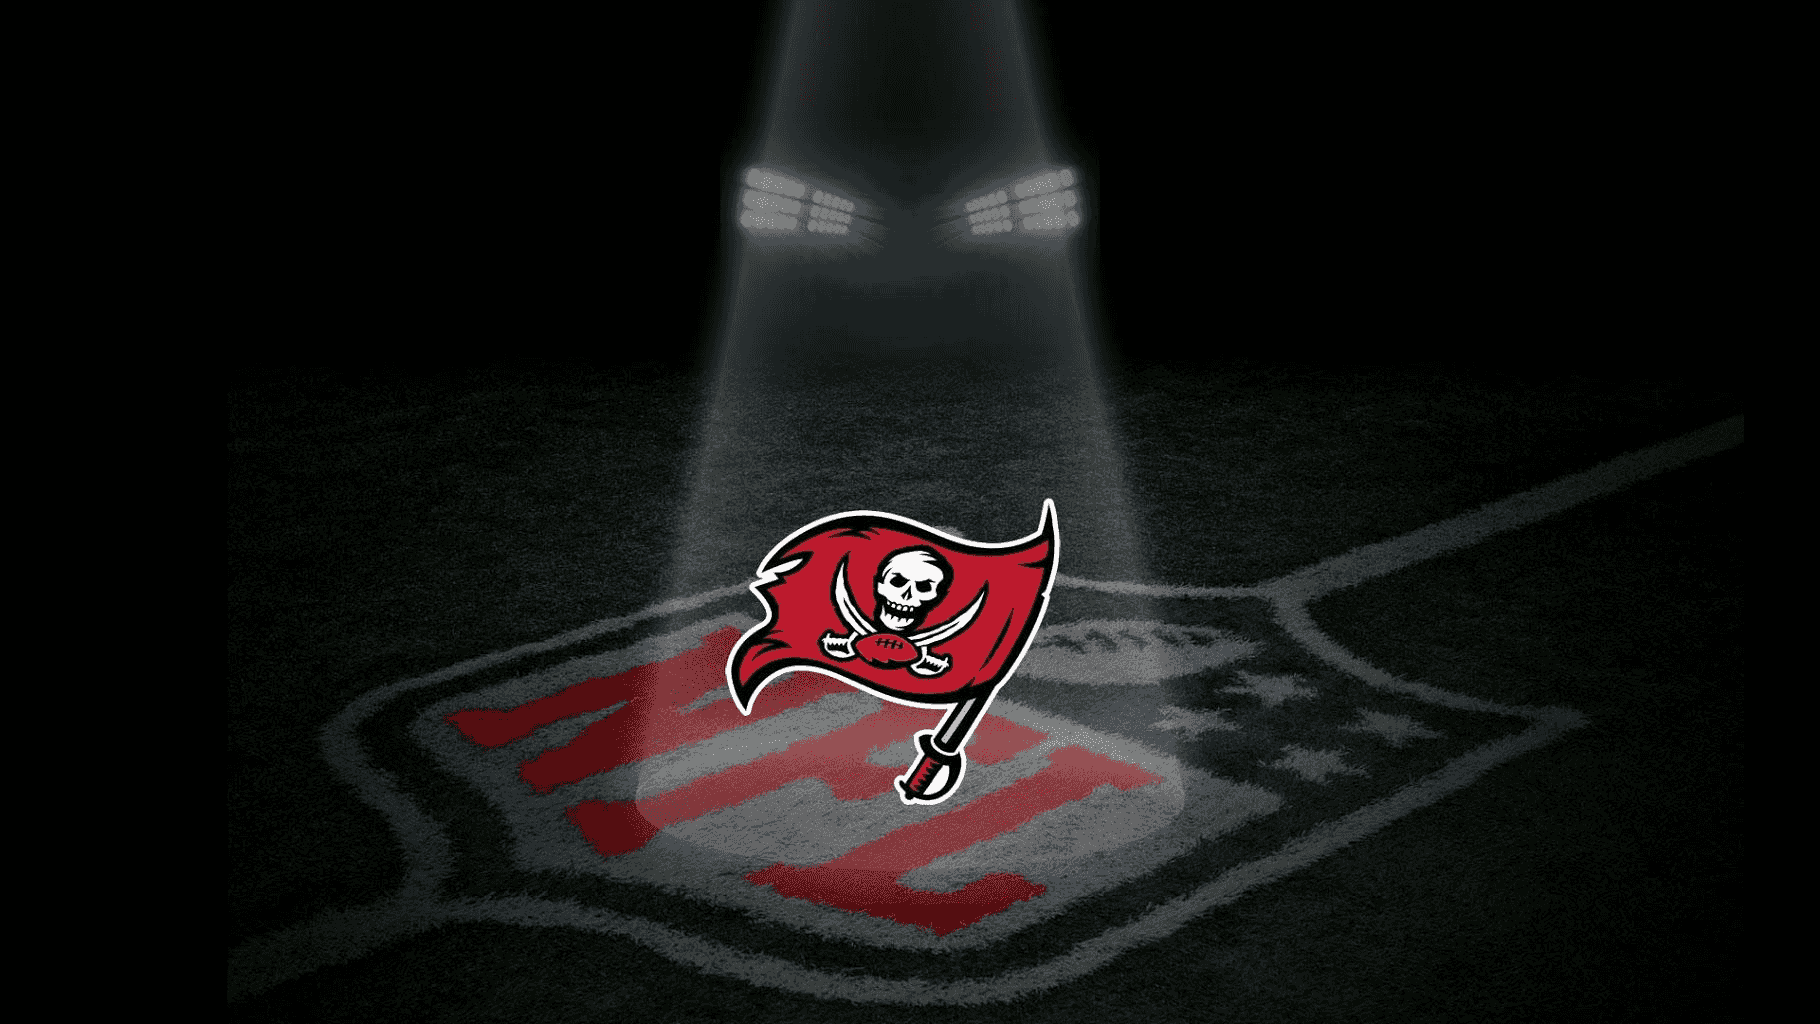 Tampa Bay Buccaneers Wallpaper Download - Tampa Bay Buccaneers ...